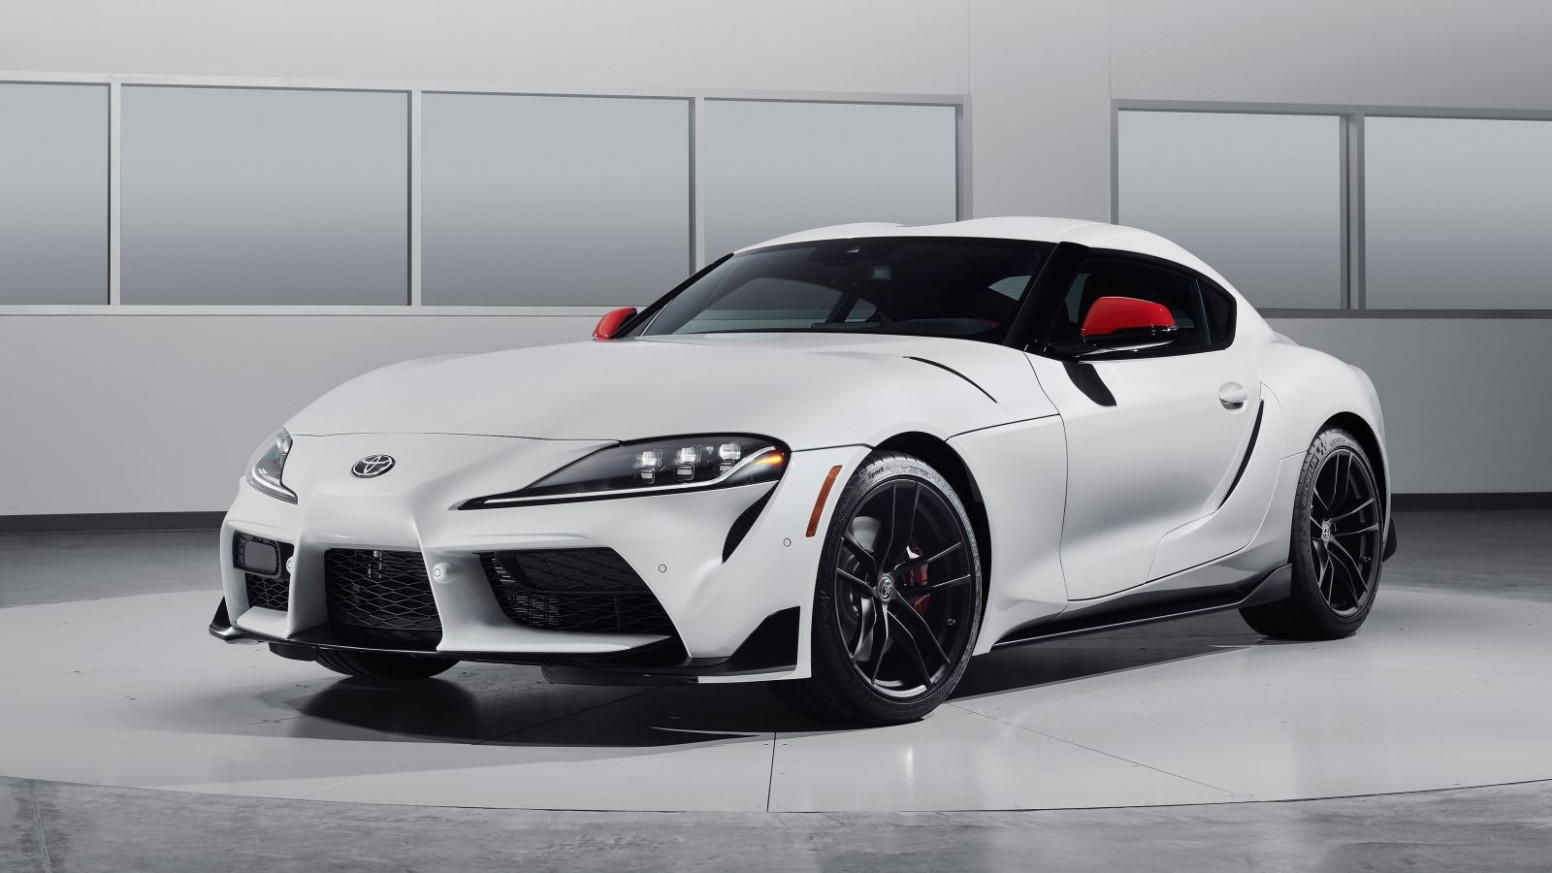 The 8 Toyota Supra Just Got an EPA Rated 8 MPG Combined ...